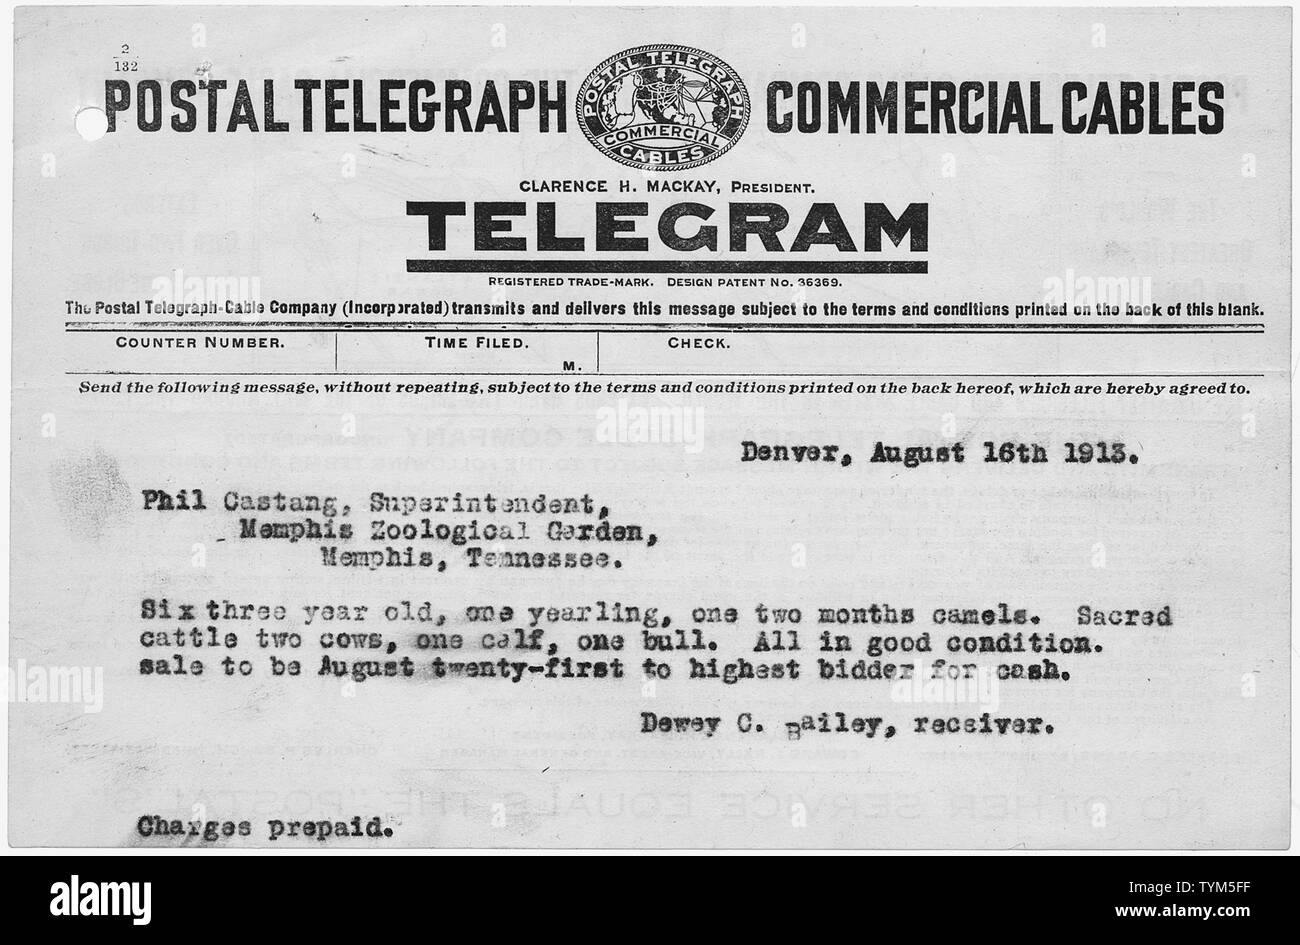 Telegram To Memphis Zoological Garden Announcing Sale Of Livestock From Buffalo Bill S Wild West Show Stock Photo Alamy